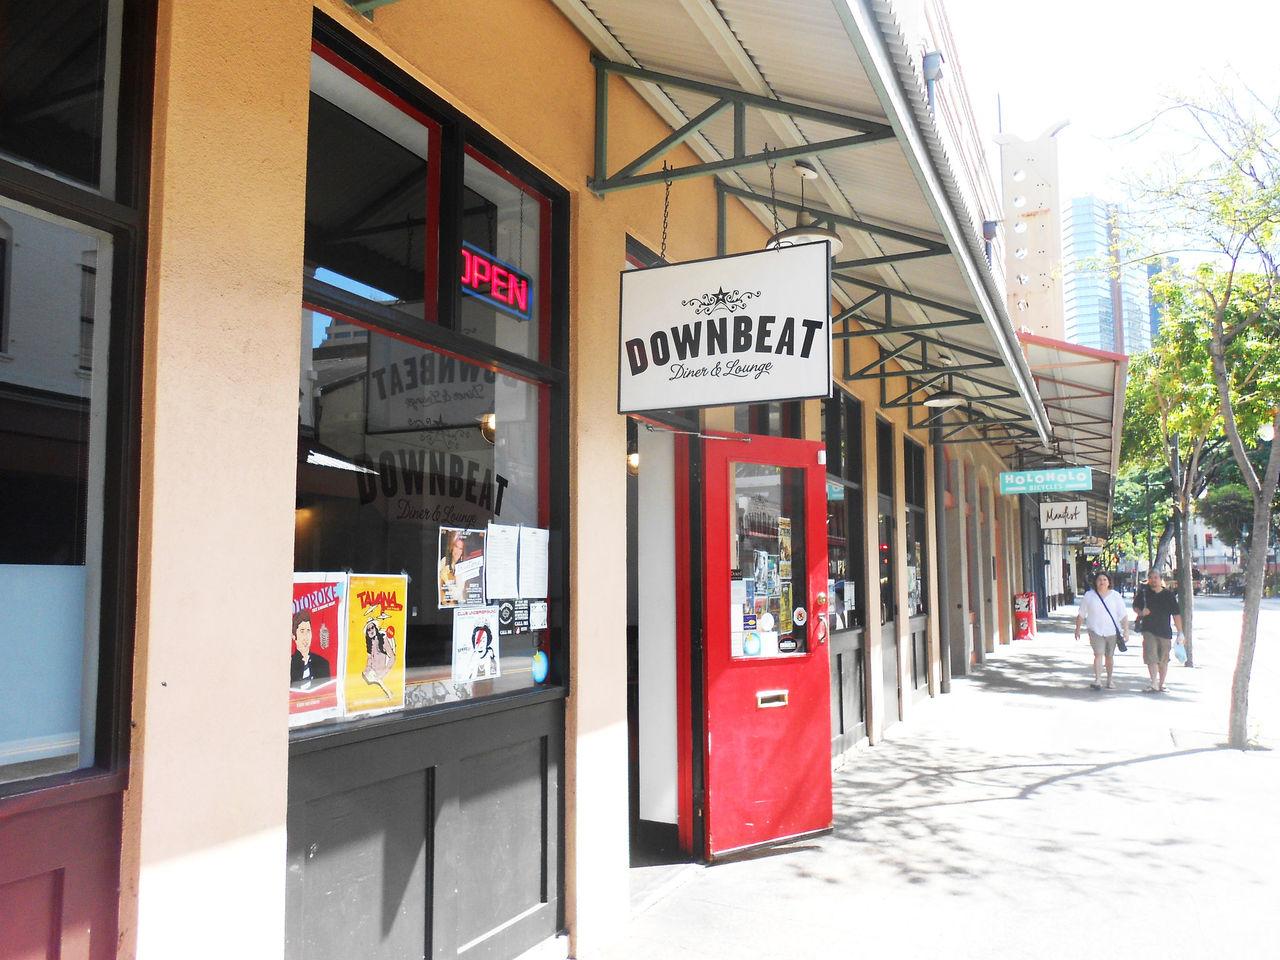 A photo of Downbeat Diner & Lounge